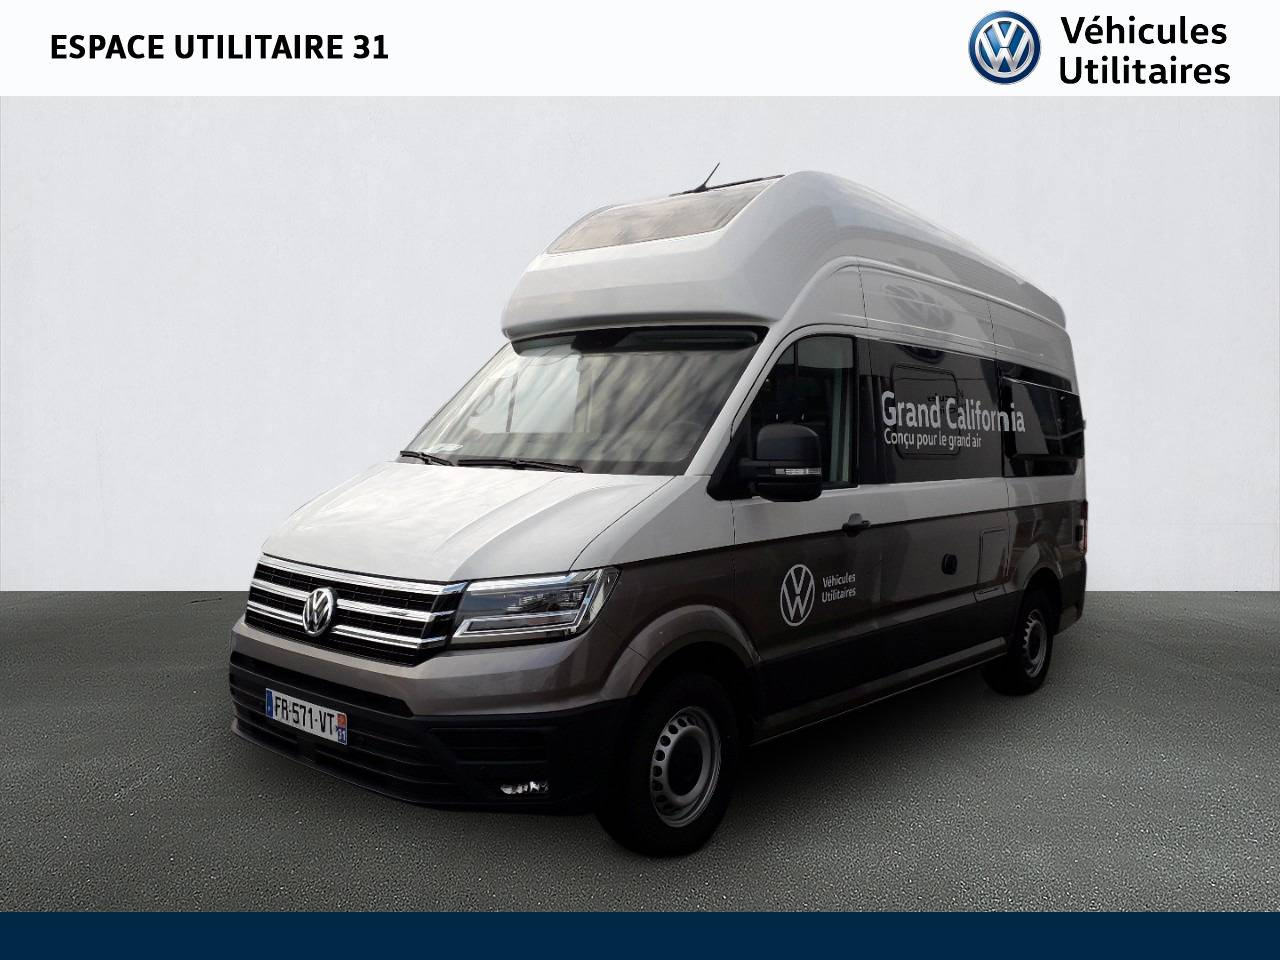 Véhicule neuf - VOLKSWAGEN UTILITAIRES - GRAND CALIFORNIA